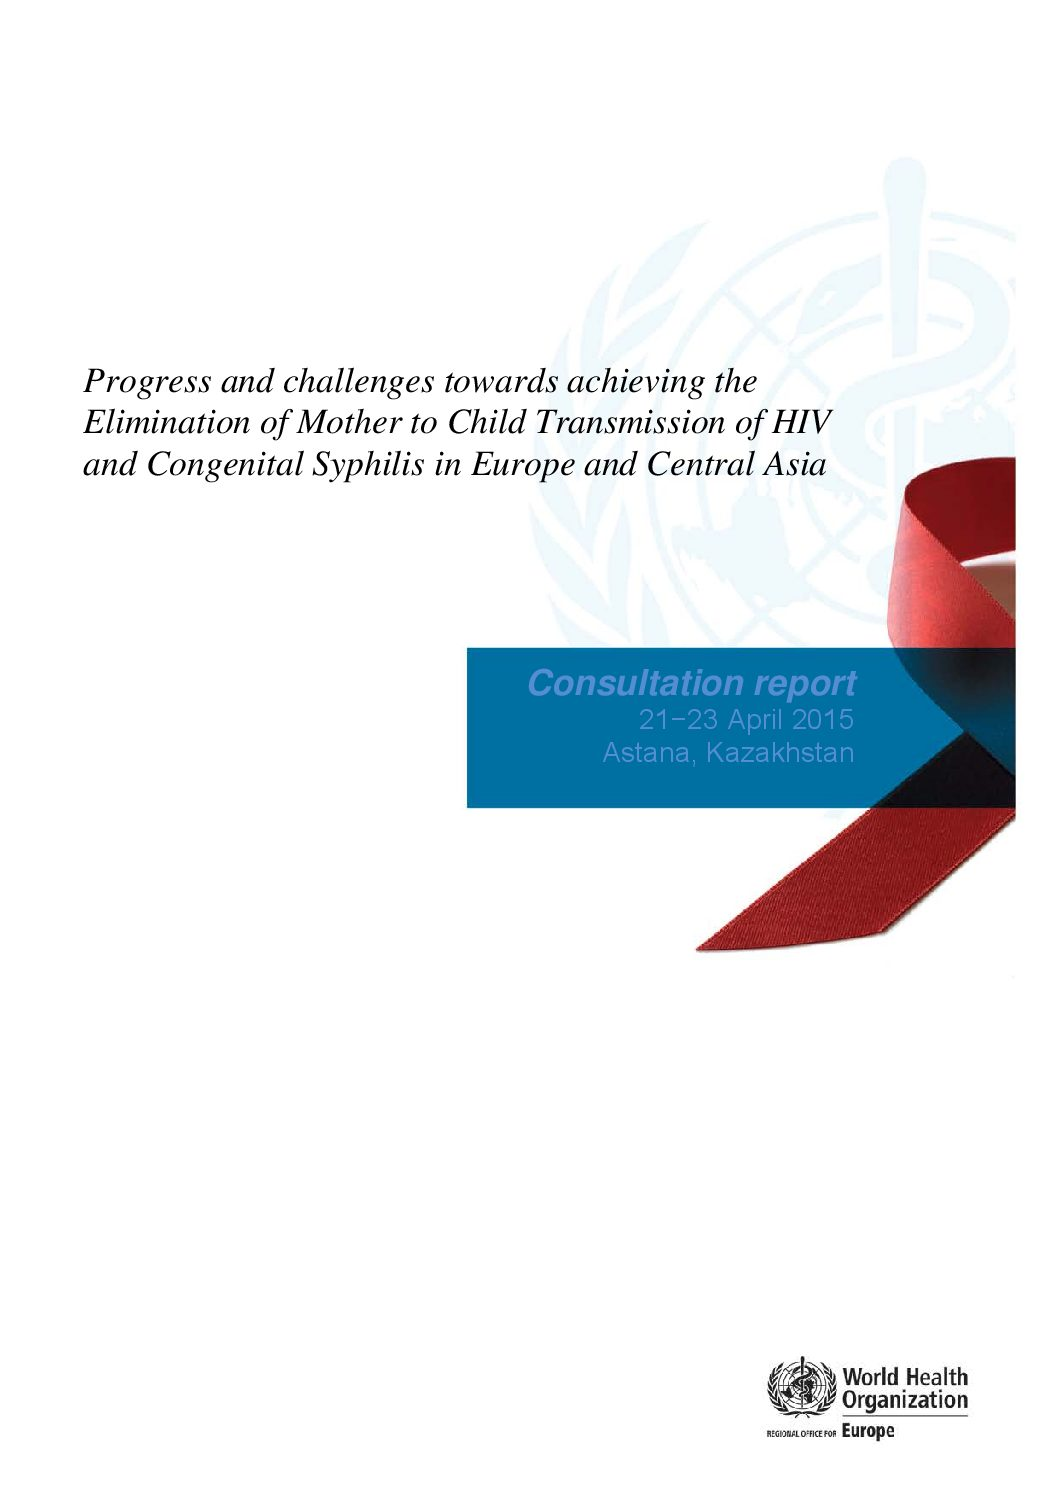 Progress and challenges towards achieving the elimination of mother to child transmission of HIV and congenital syphilis in Europe and Central Asia. Consultation report. 2015.